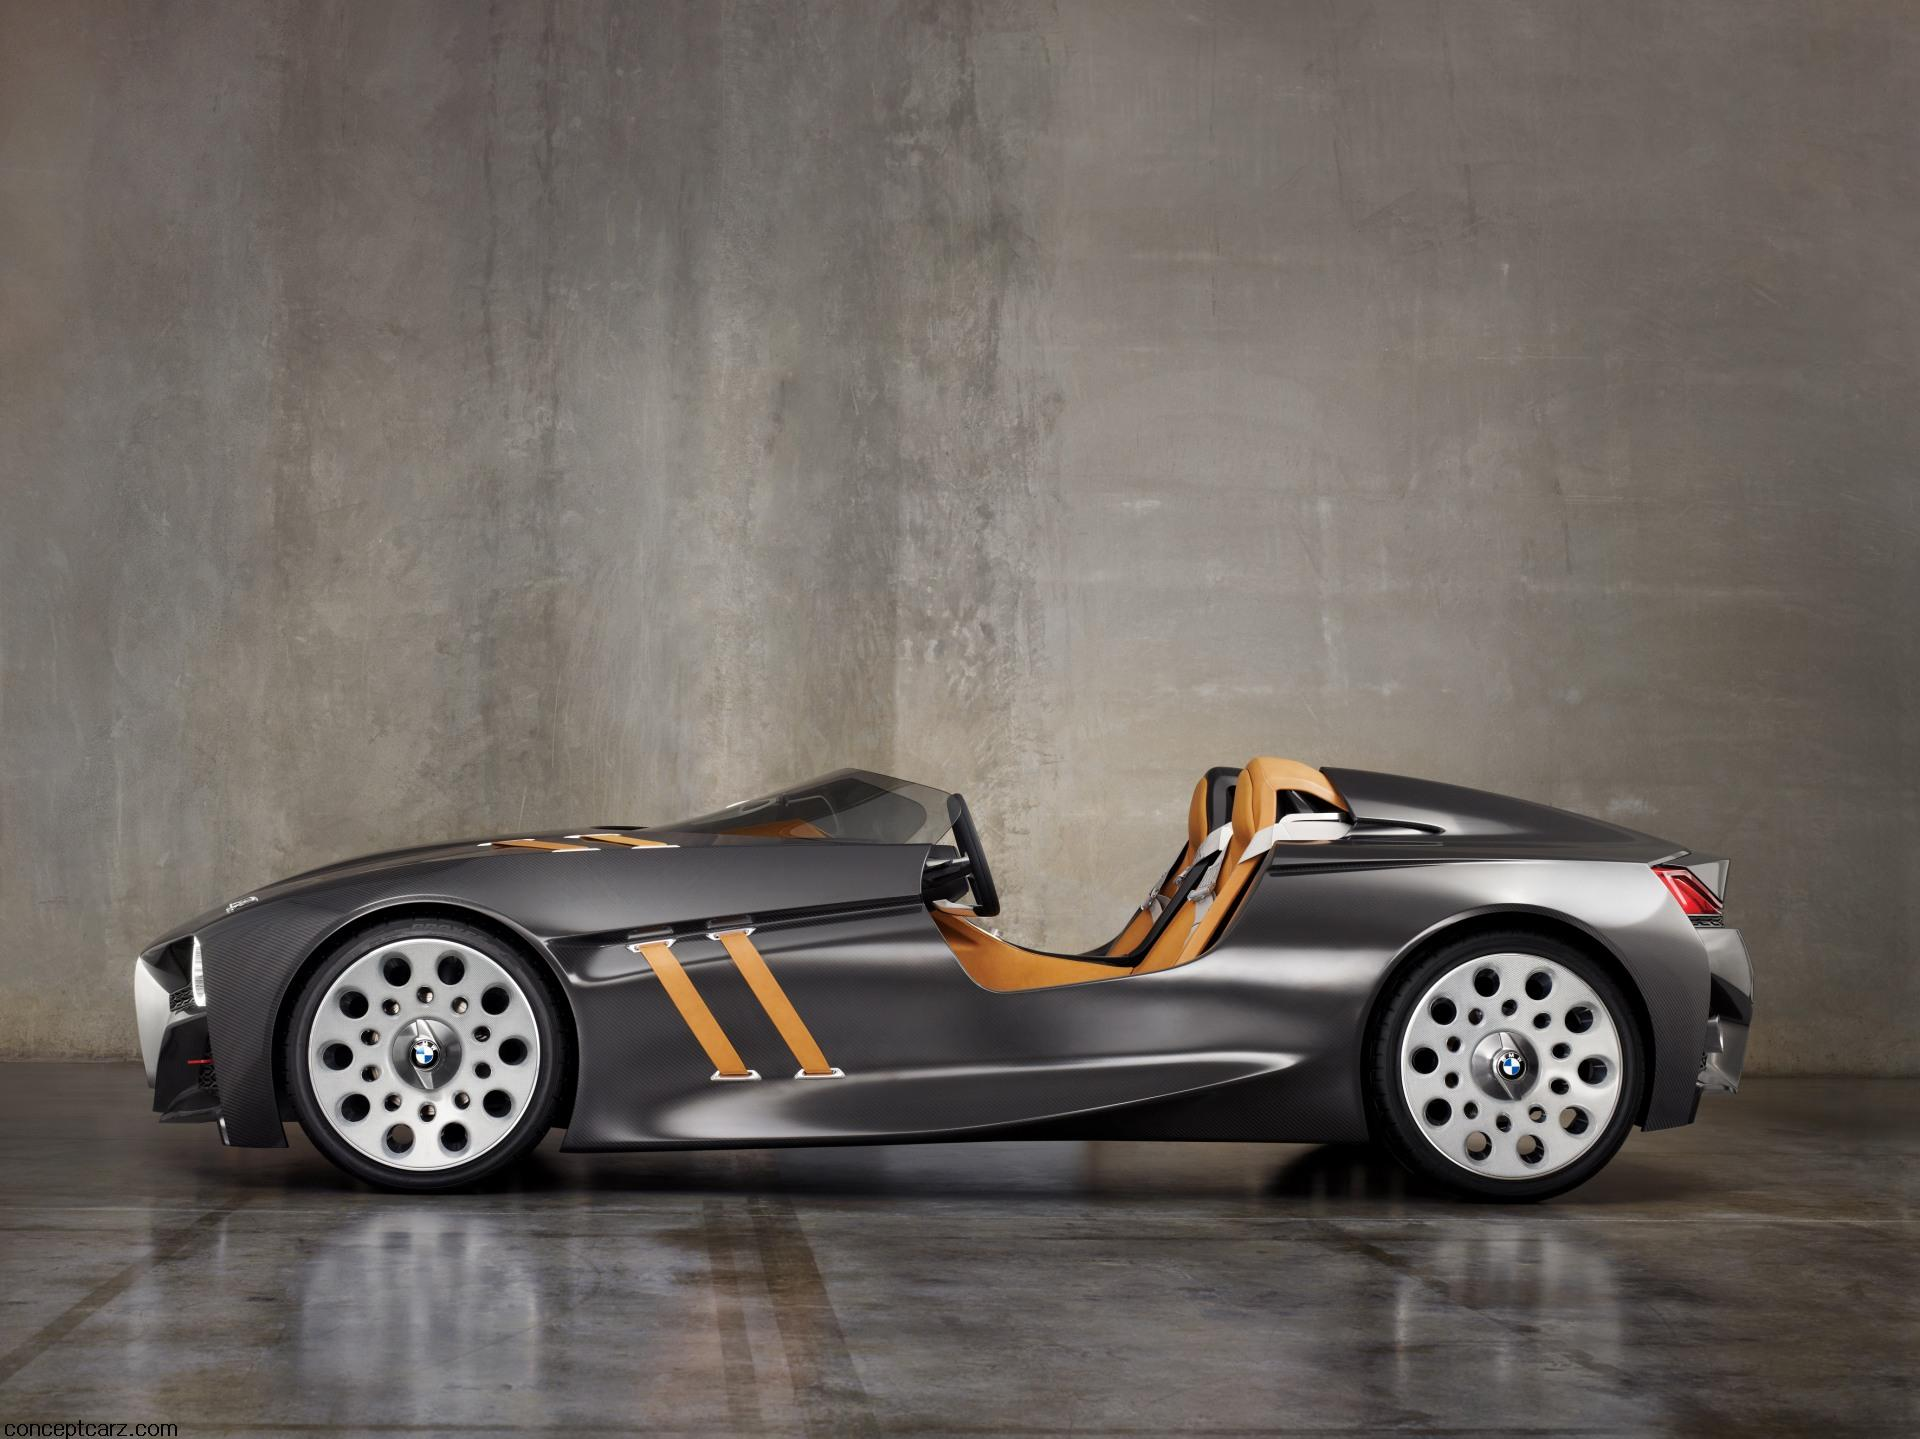 2011 BMW 328 Hommage News and Information, Research, and History